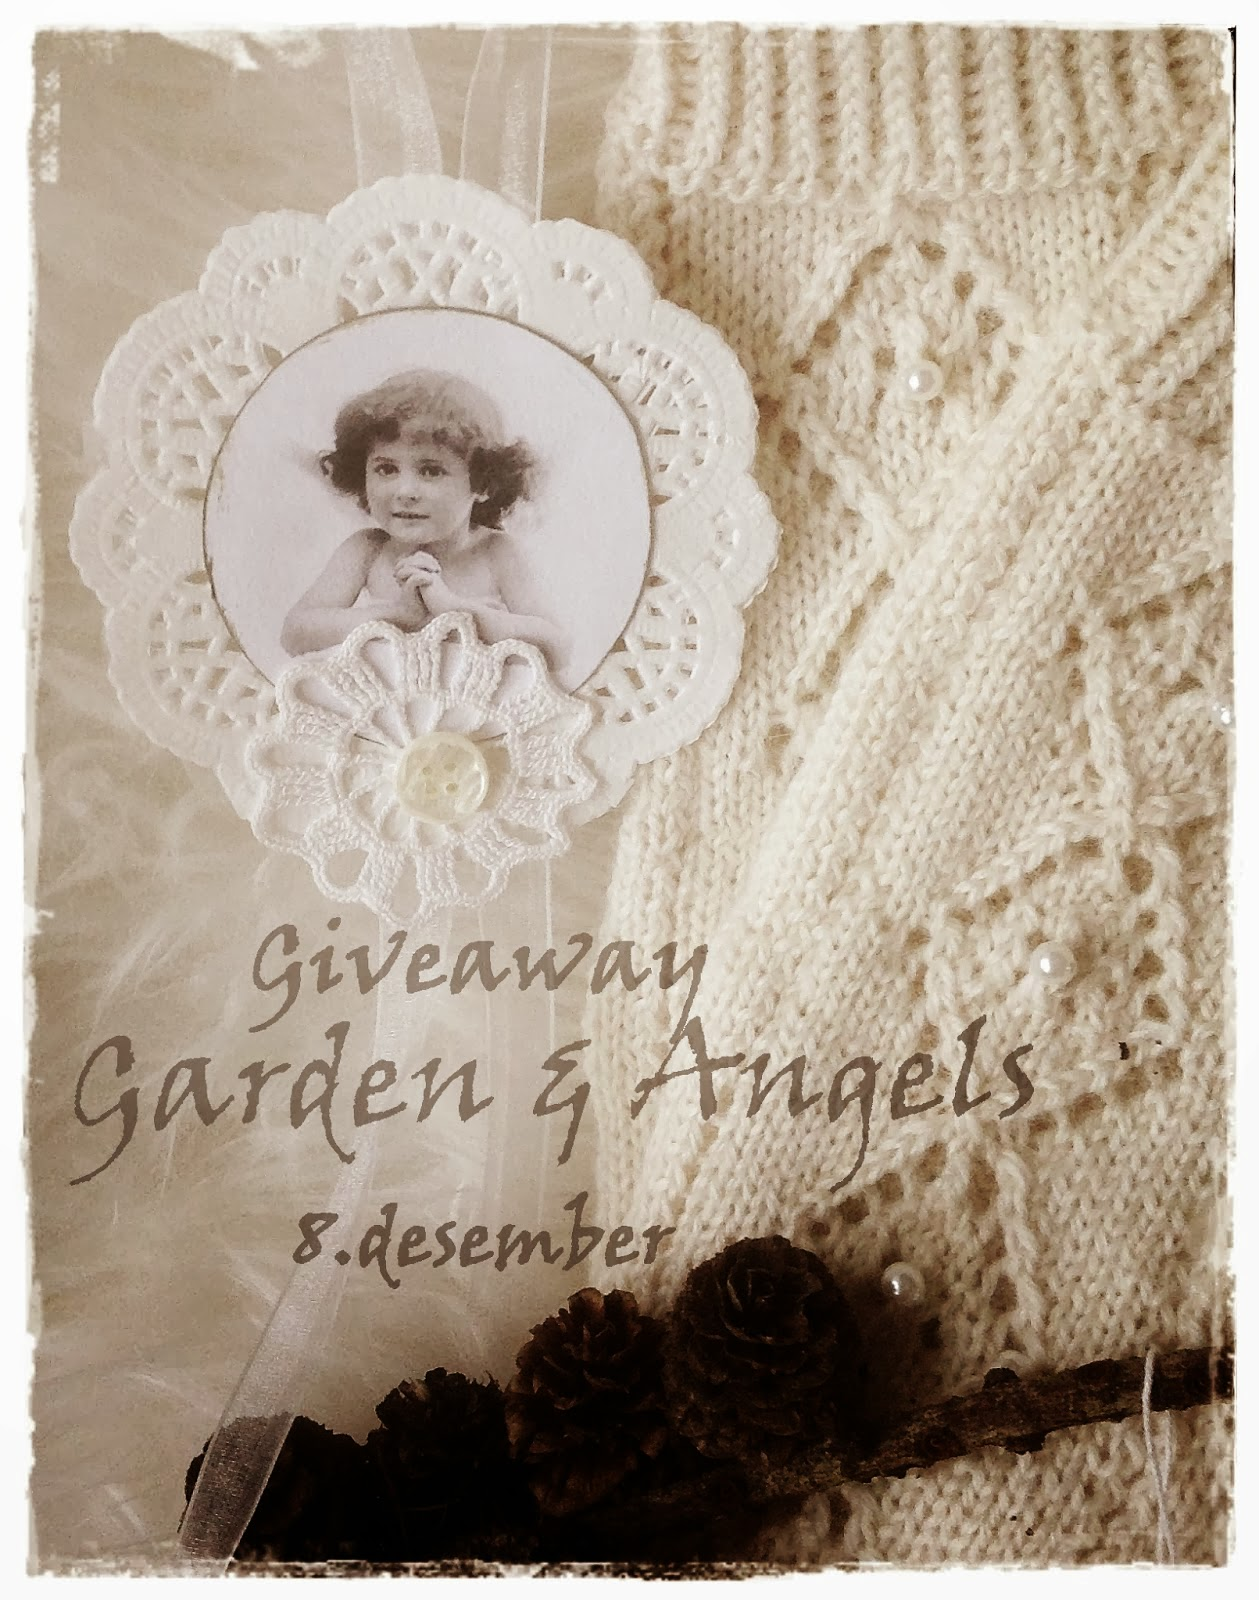 Give away hos Garden and Angels